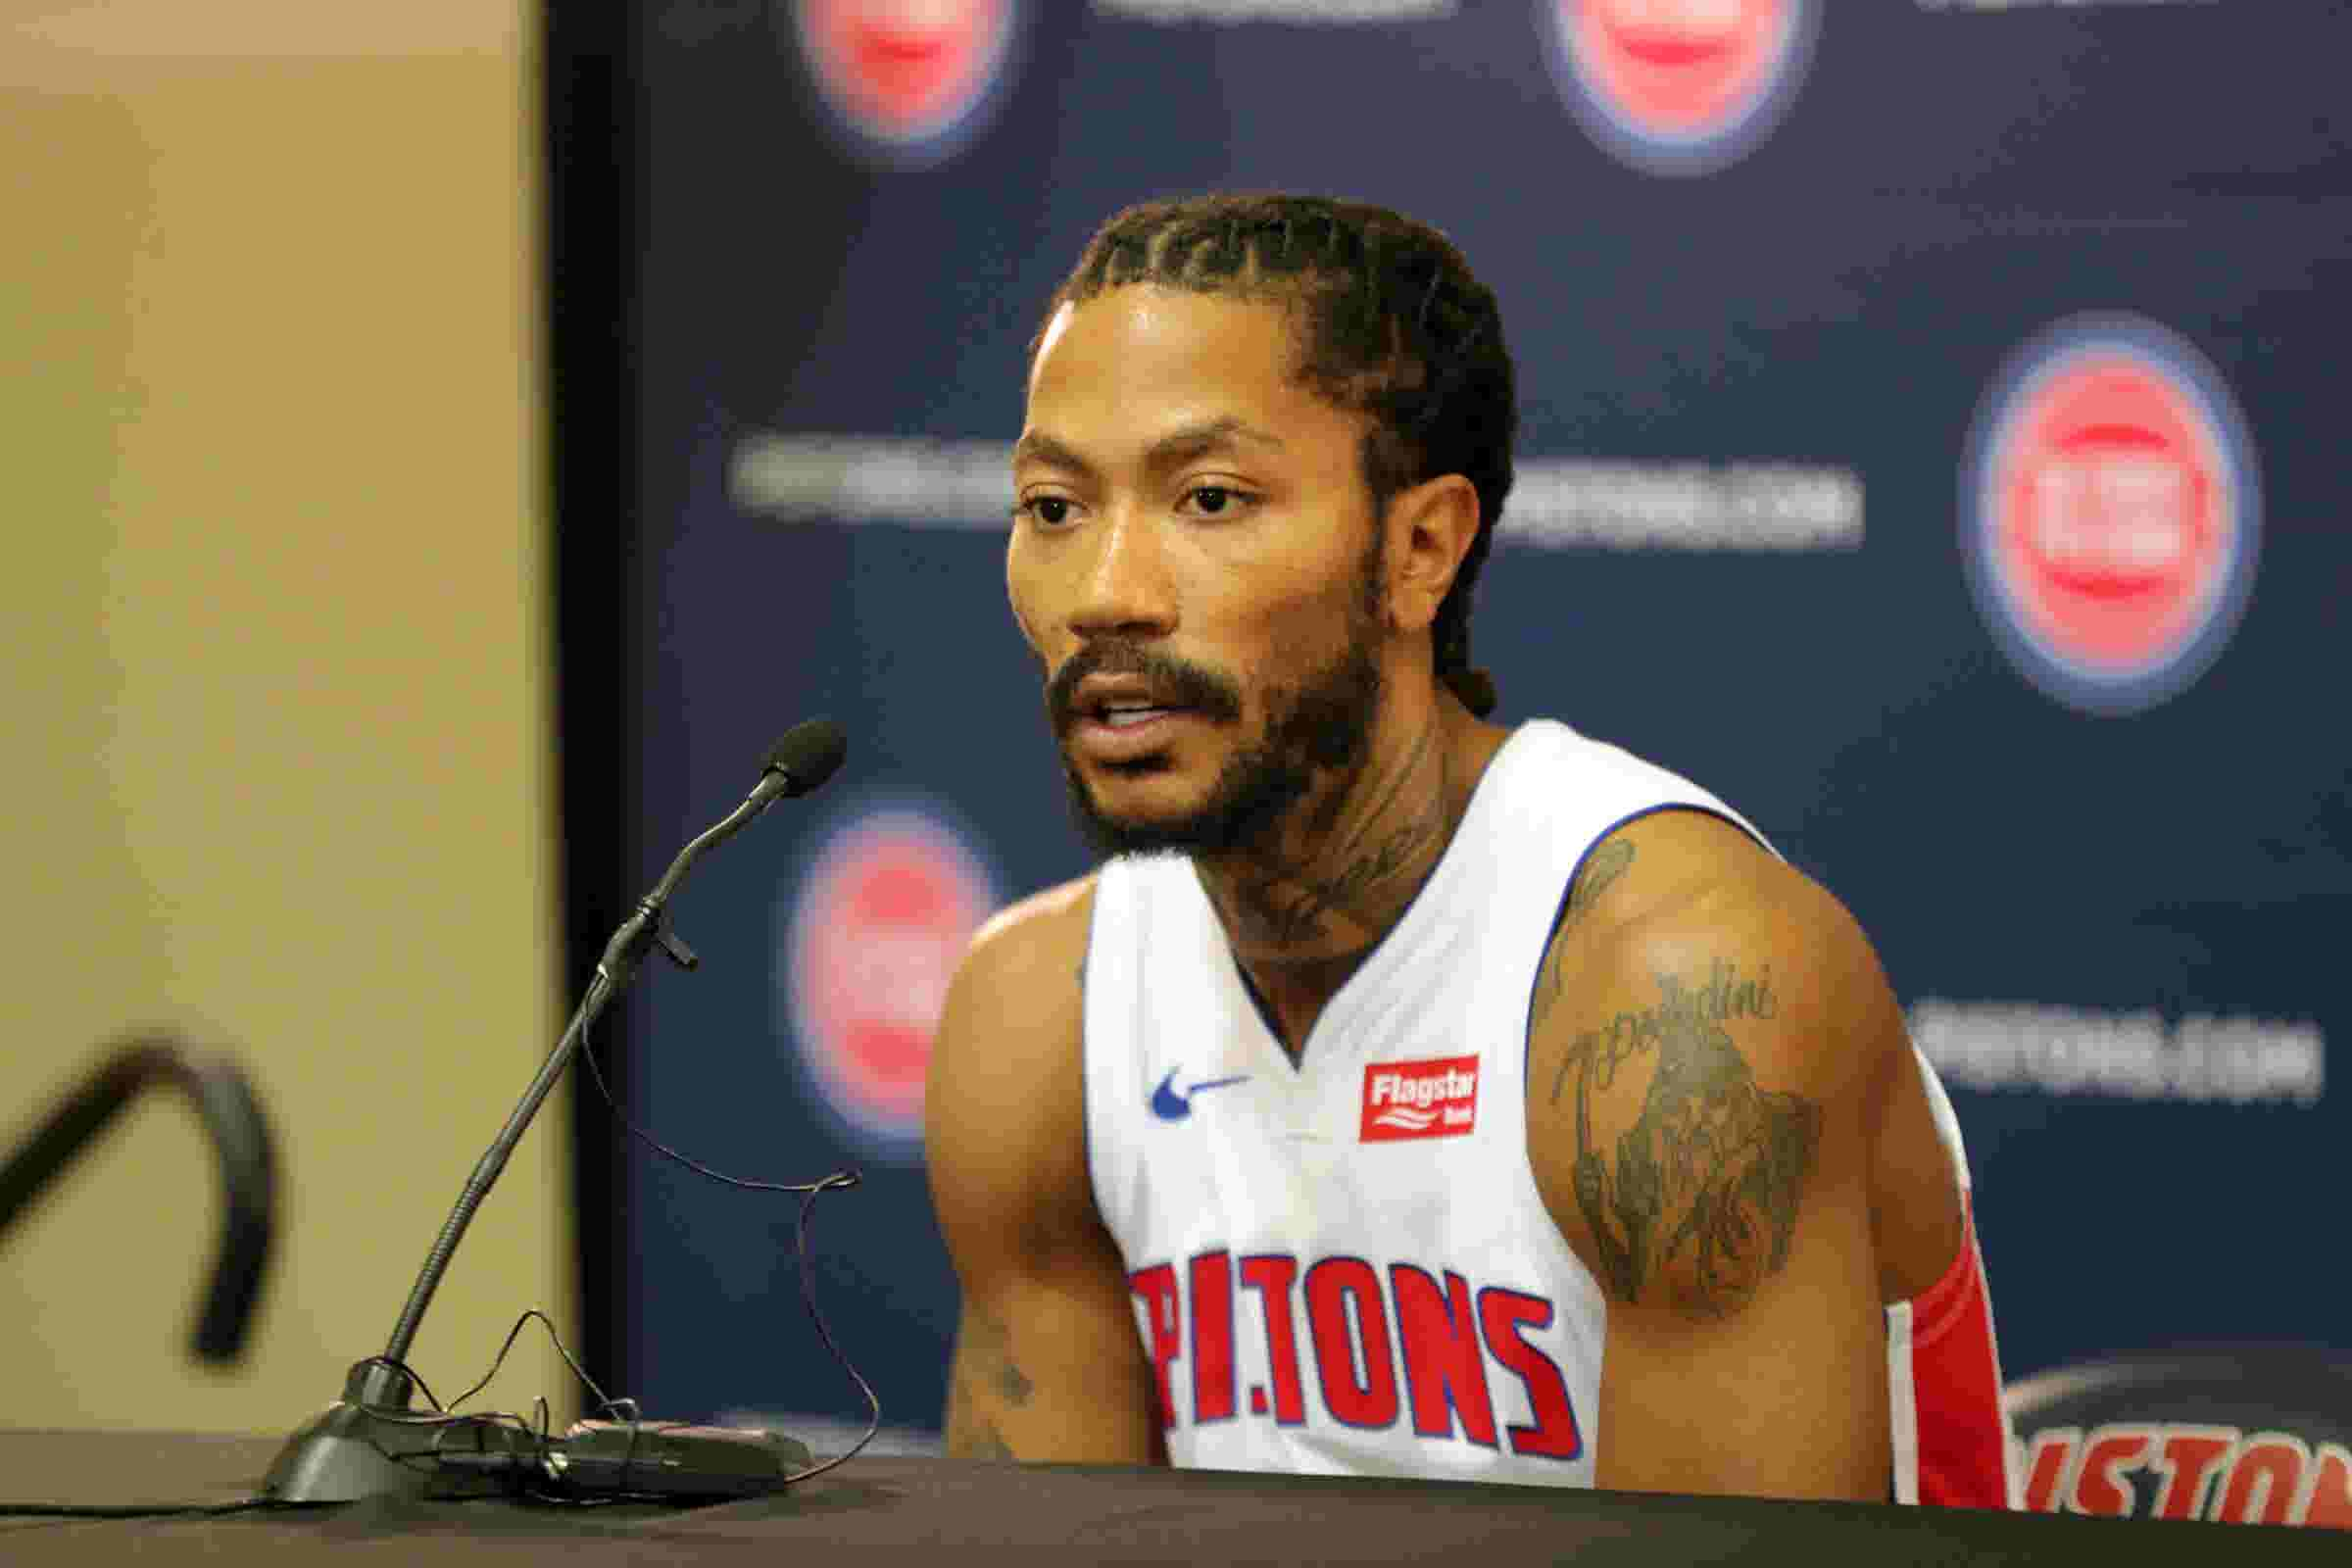 Astonishing Derrick Rose On Why He Signed With Detroit Pistons In Summer Schematic Wiring Diagrams Amerangerunnerswayorg